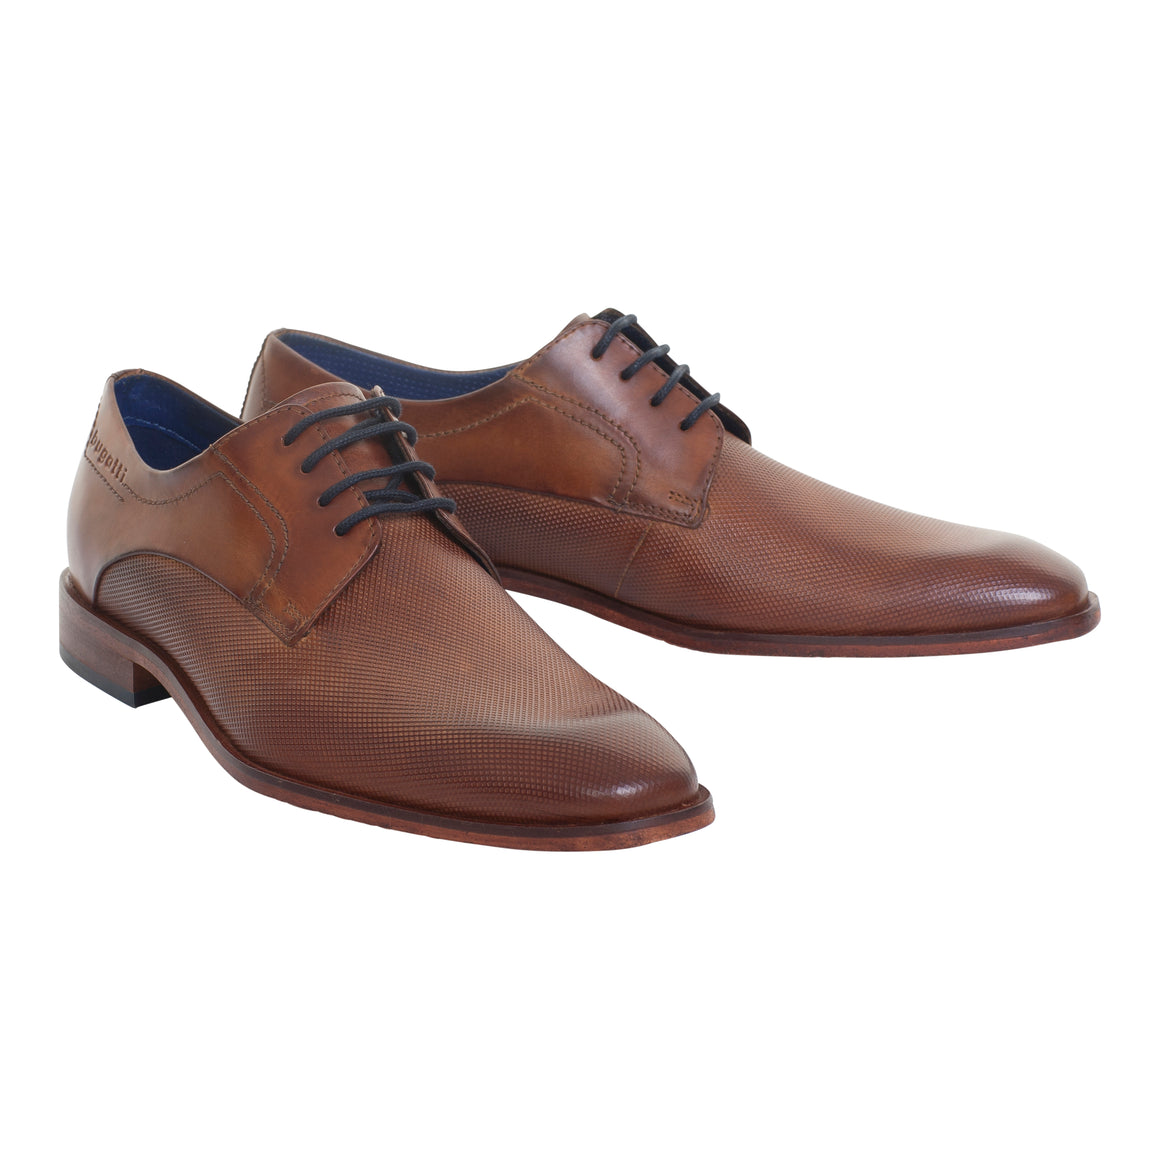 Casual Shoe for Men in Cognac/Dk Brown